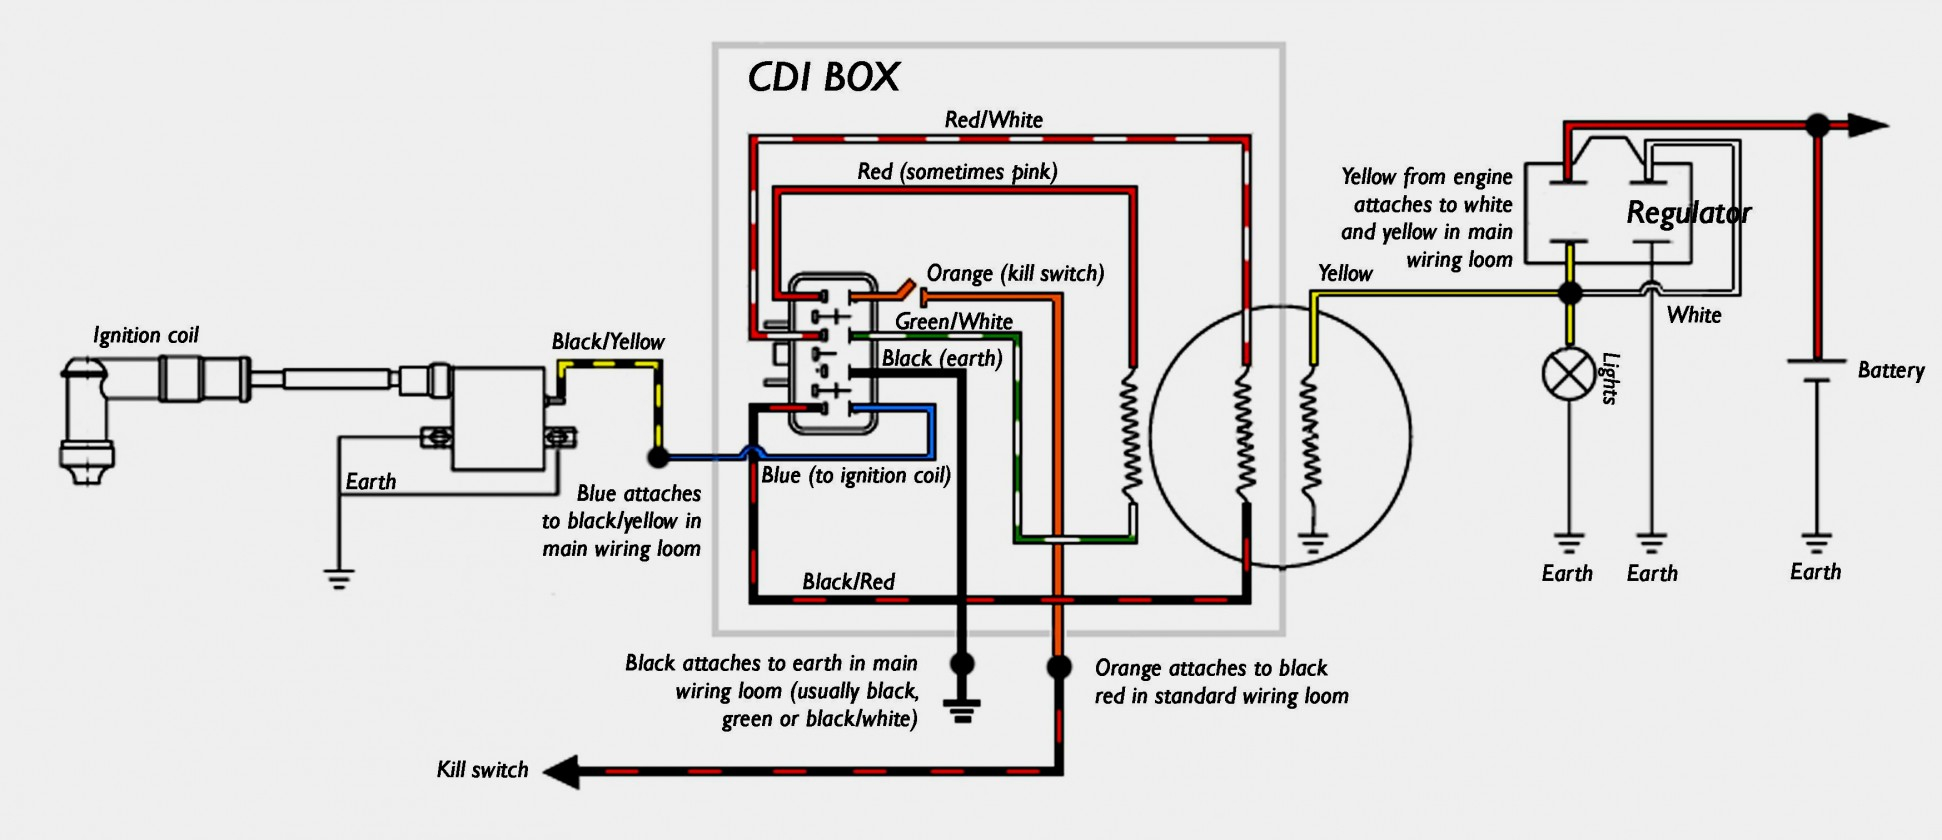 Honda Cr 125 Cdi Ignition System Wiring Schematic - what is